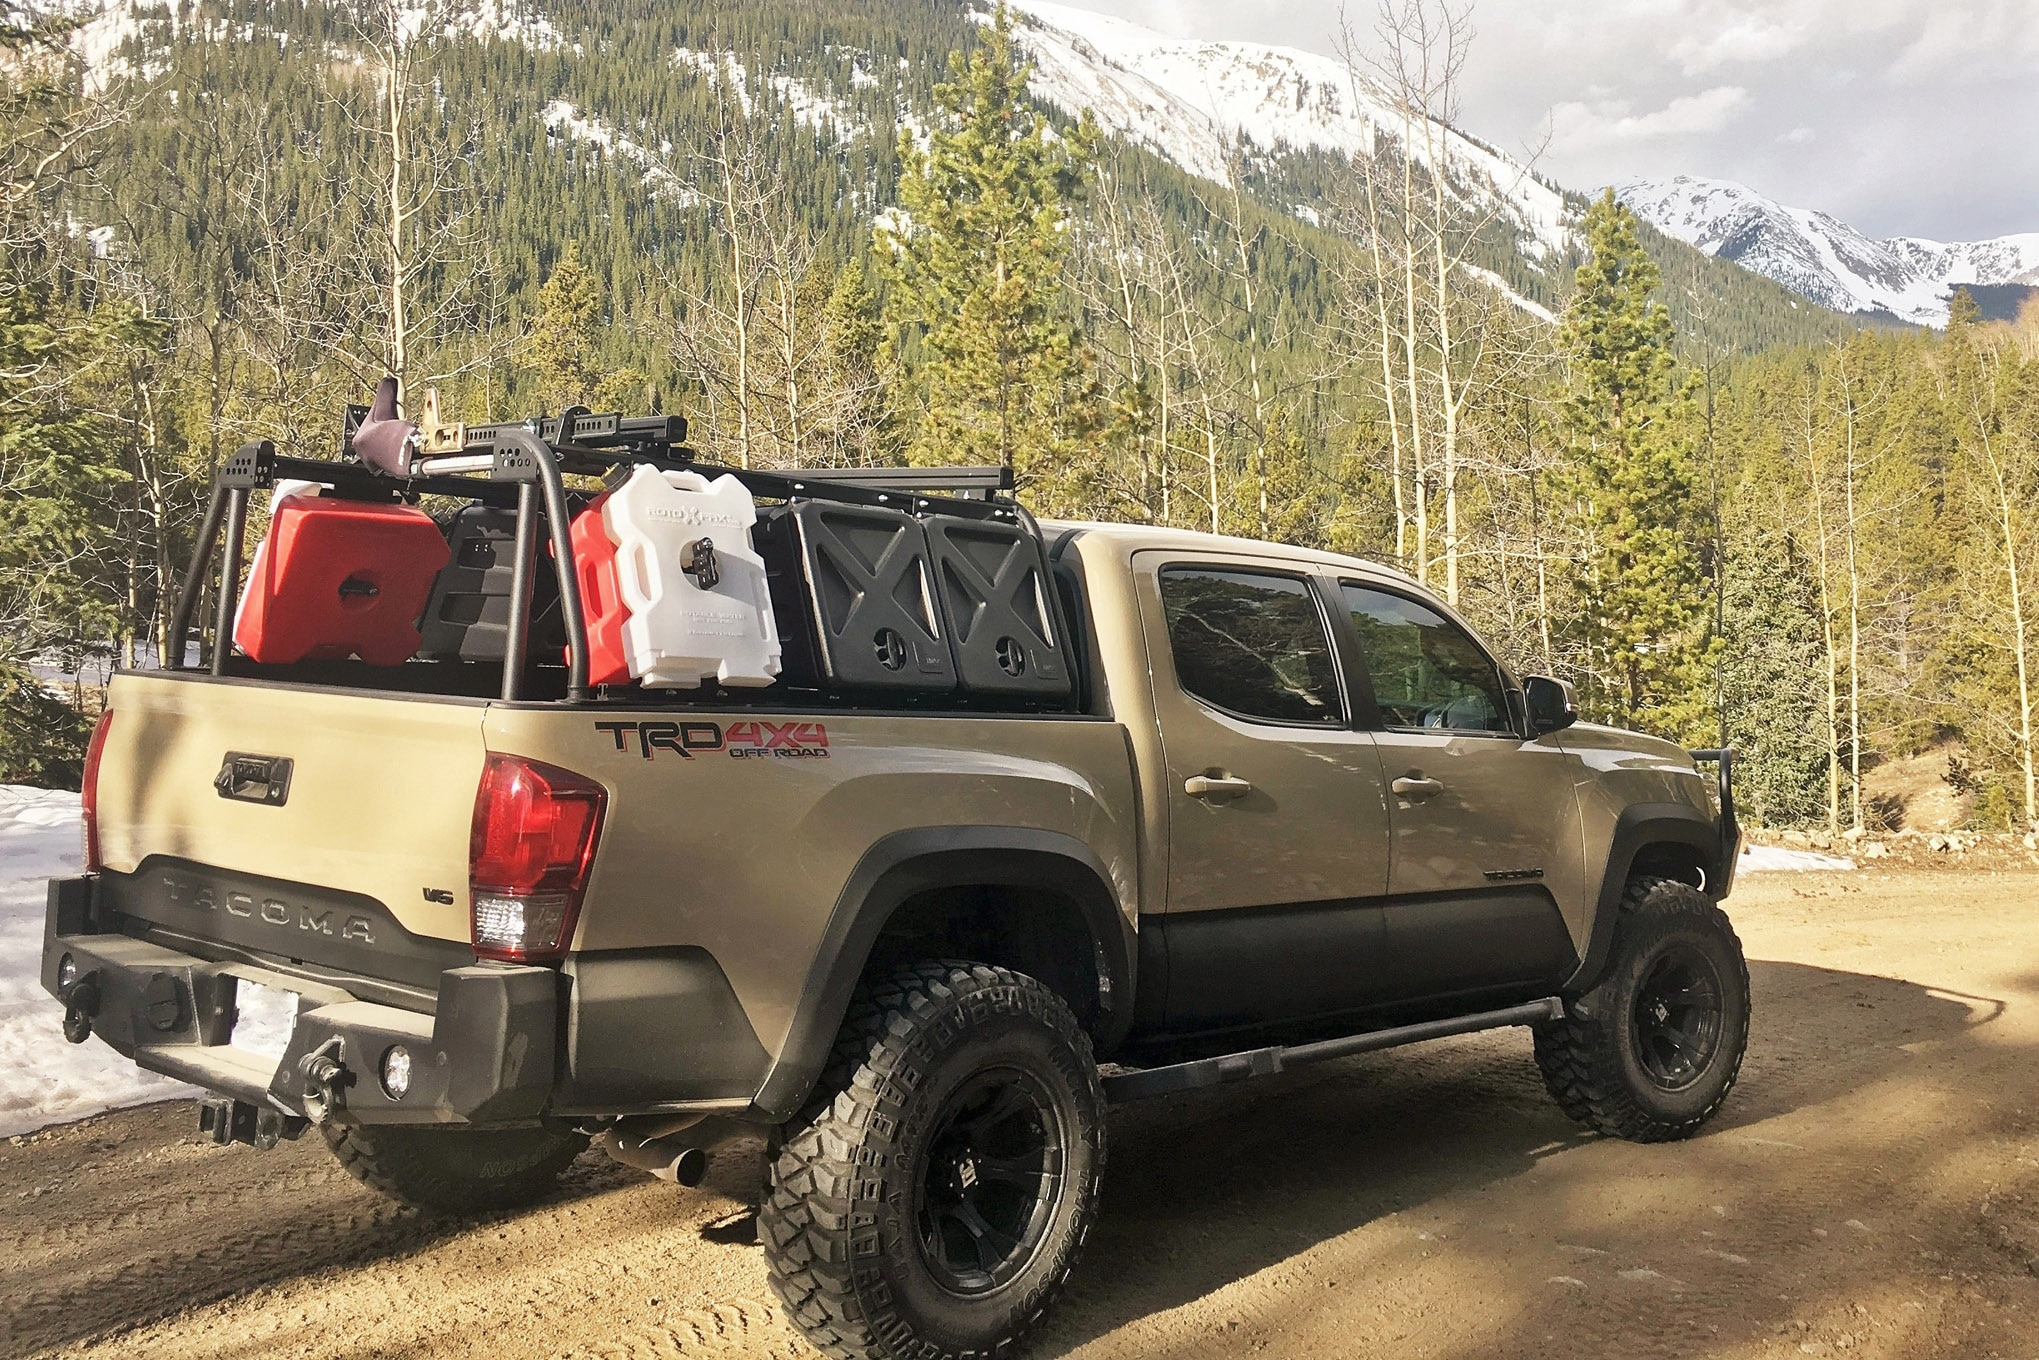 Cargo Management: Products For Organizing, Storing, And Packing Up Your 4x4